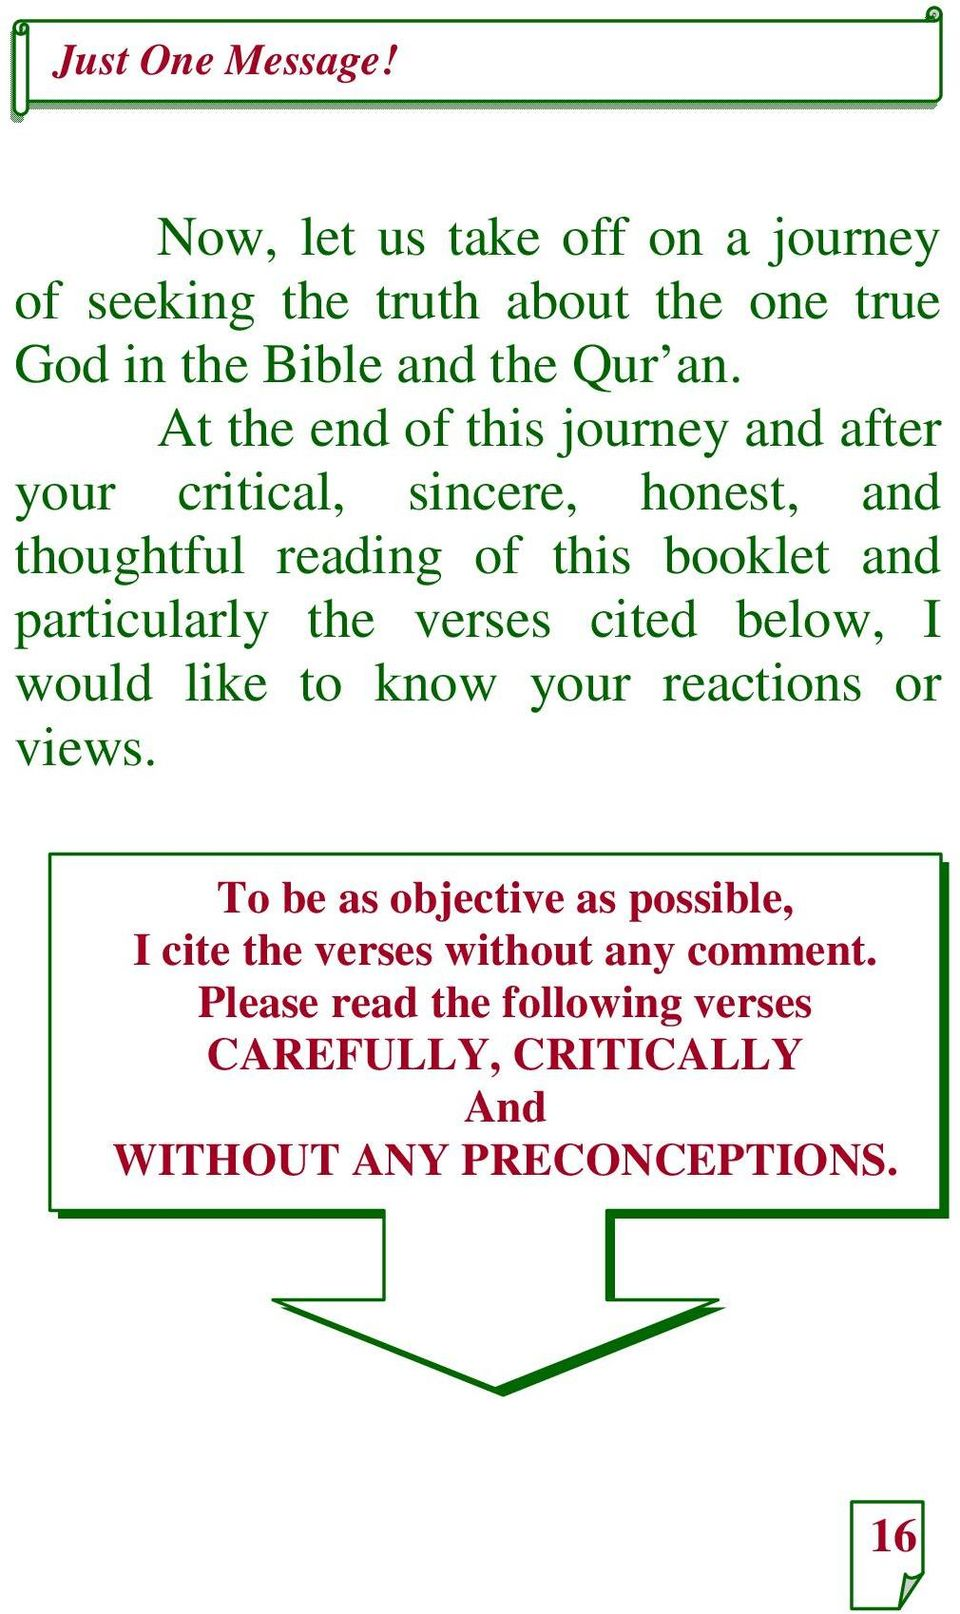 particularly the verses cited below, I would like to know your reactions or views.